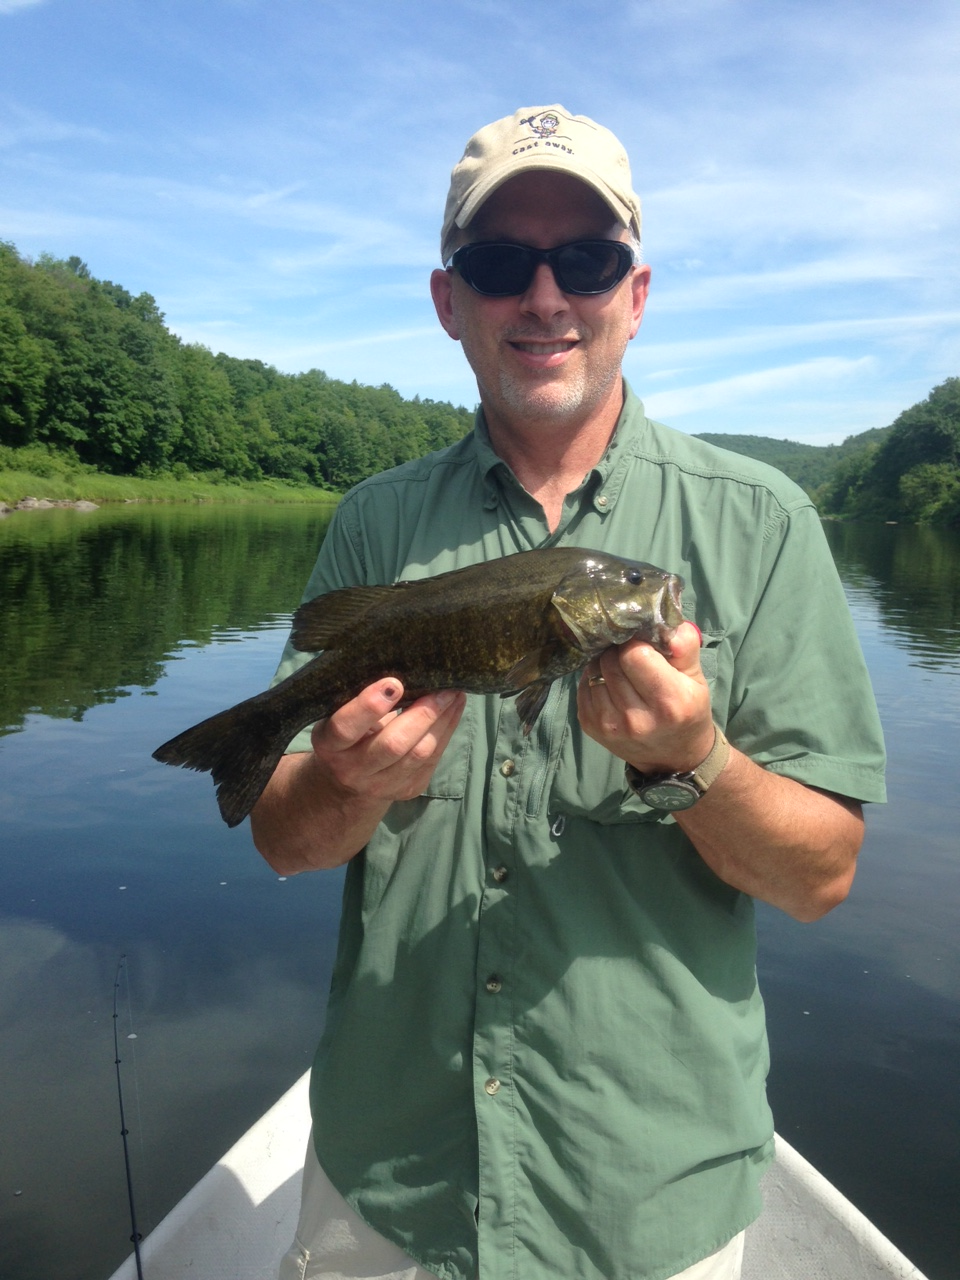 6/14/15 Dave L. gets into some decent smallmouth on a nice day!